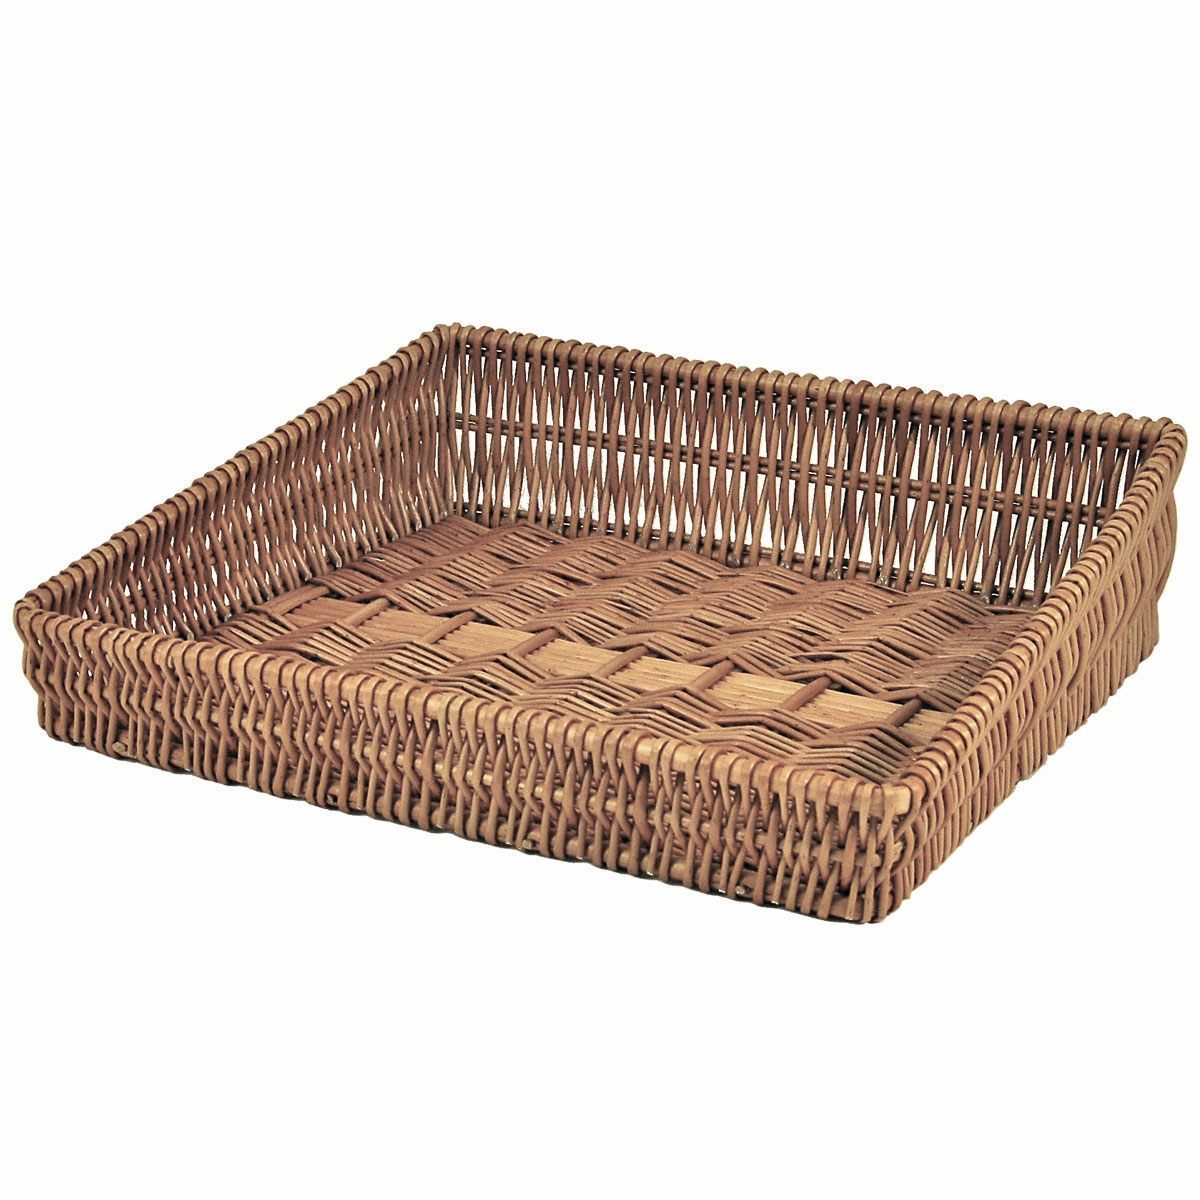 content/products/large-wicker-display-tray-office-snacks.jpg